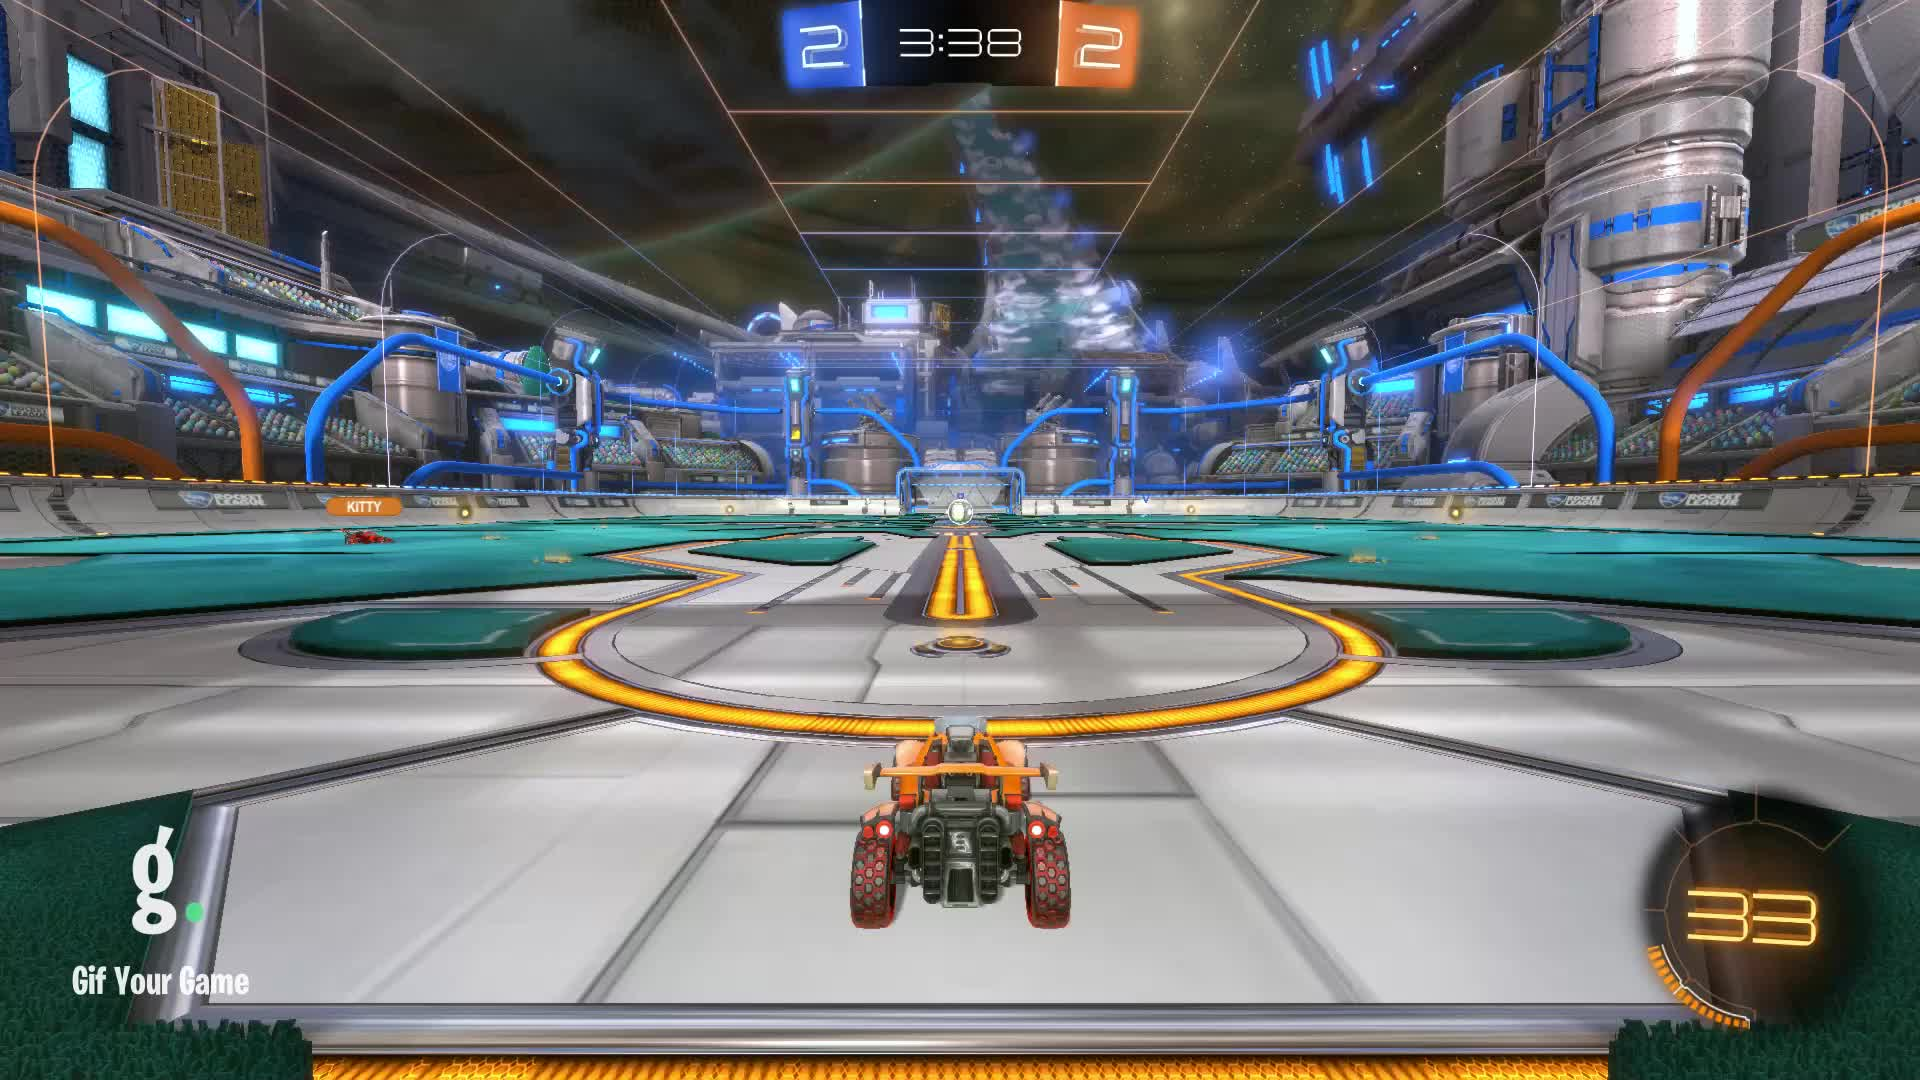 Gif Your Game, GifYourGame, Goal, Road to Bronze I, Rocket League, RocketLeague, Goal 5: Road to Bronze I GIFs